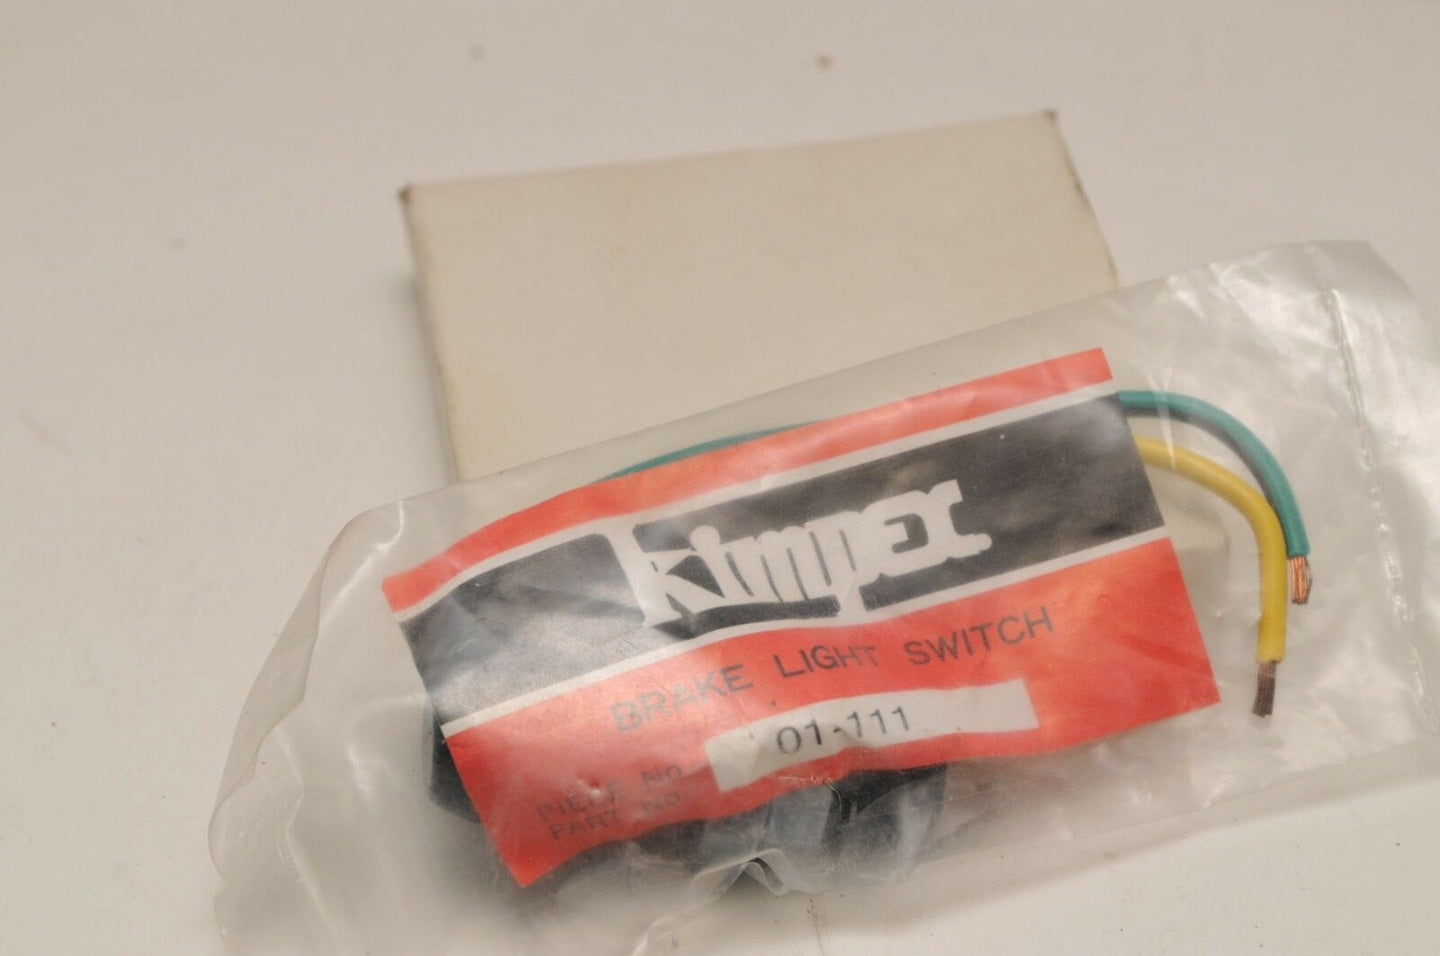 New NOS Kimpex  01-111 Brake Light Stoplight Switch - Normally Closed Snowmobile - Motomike Canada